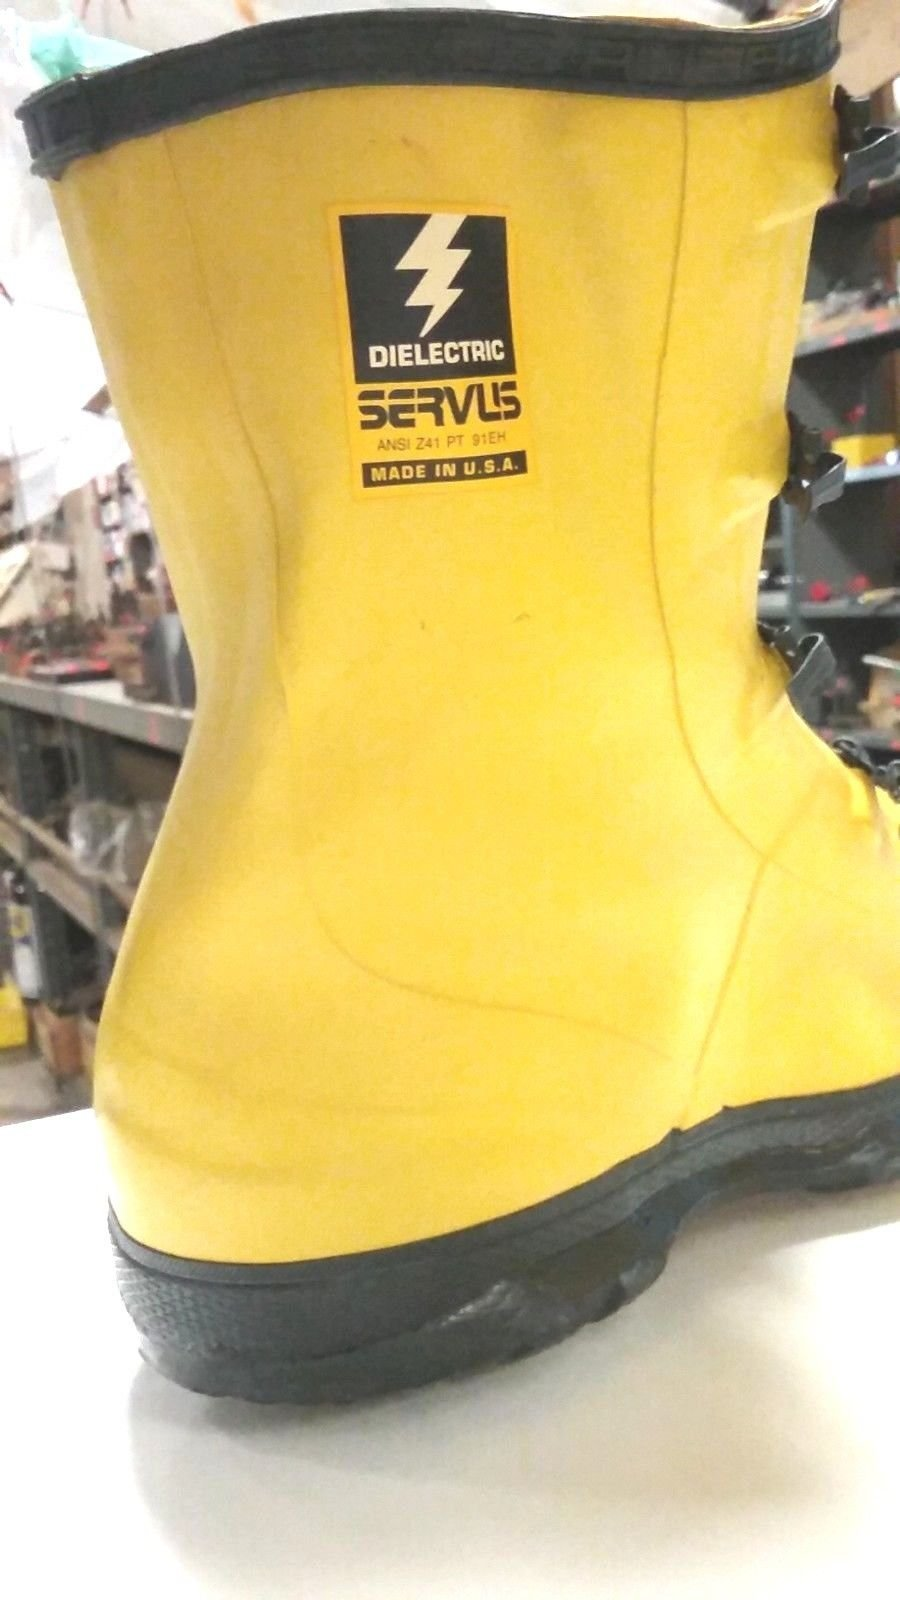 NEW -SERVUS MEN'S SIZE 14 - DIELECTRIC - 4 BUCKLE - YELLOW - OVERBOOT #31910-14 USA